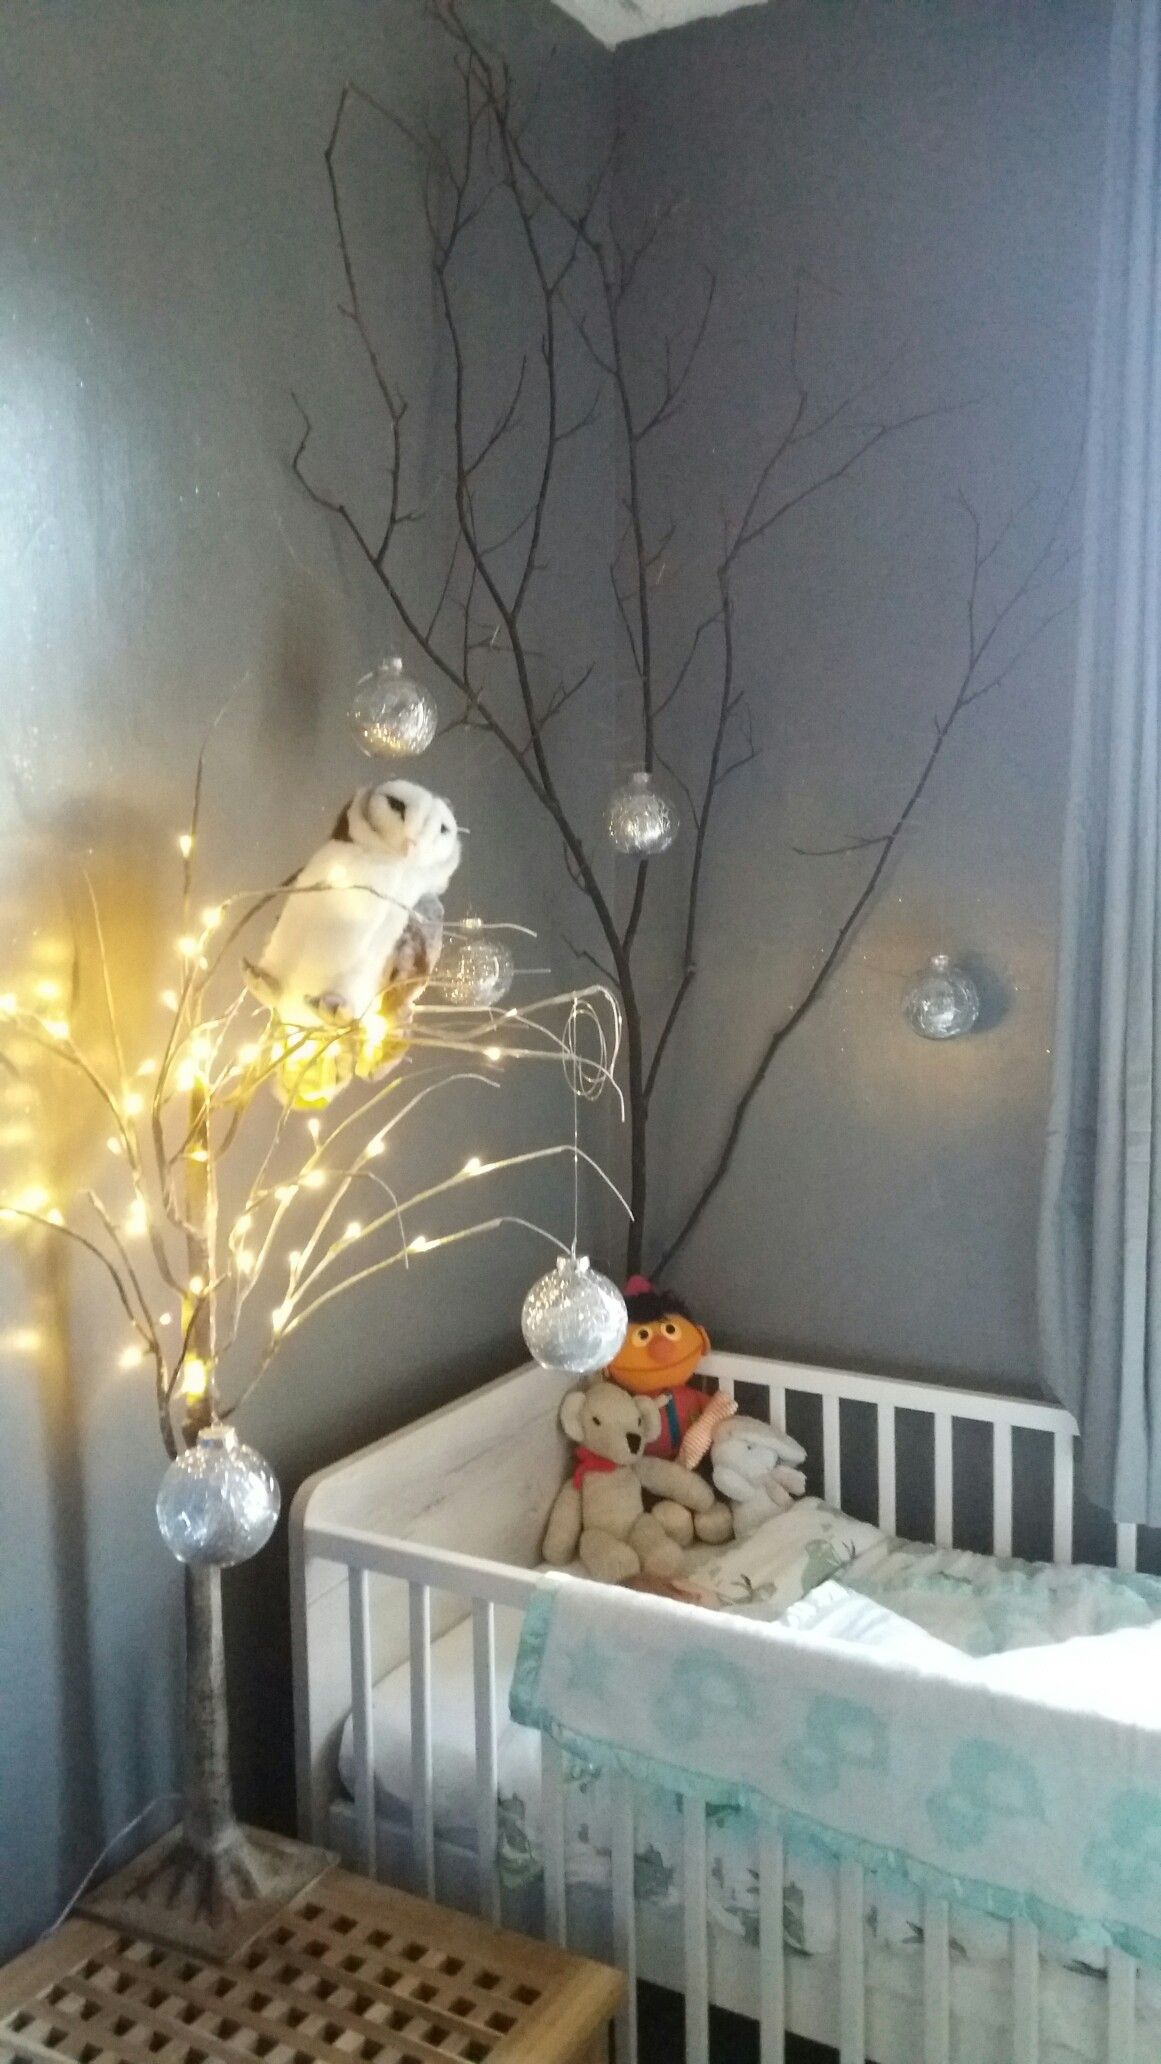 Labyrinth Theme Nursery With Crystal Balls Decorating The Tree